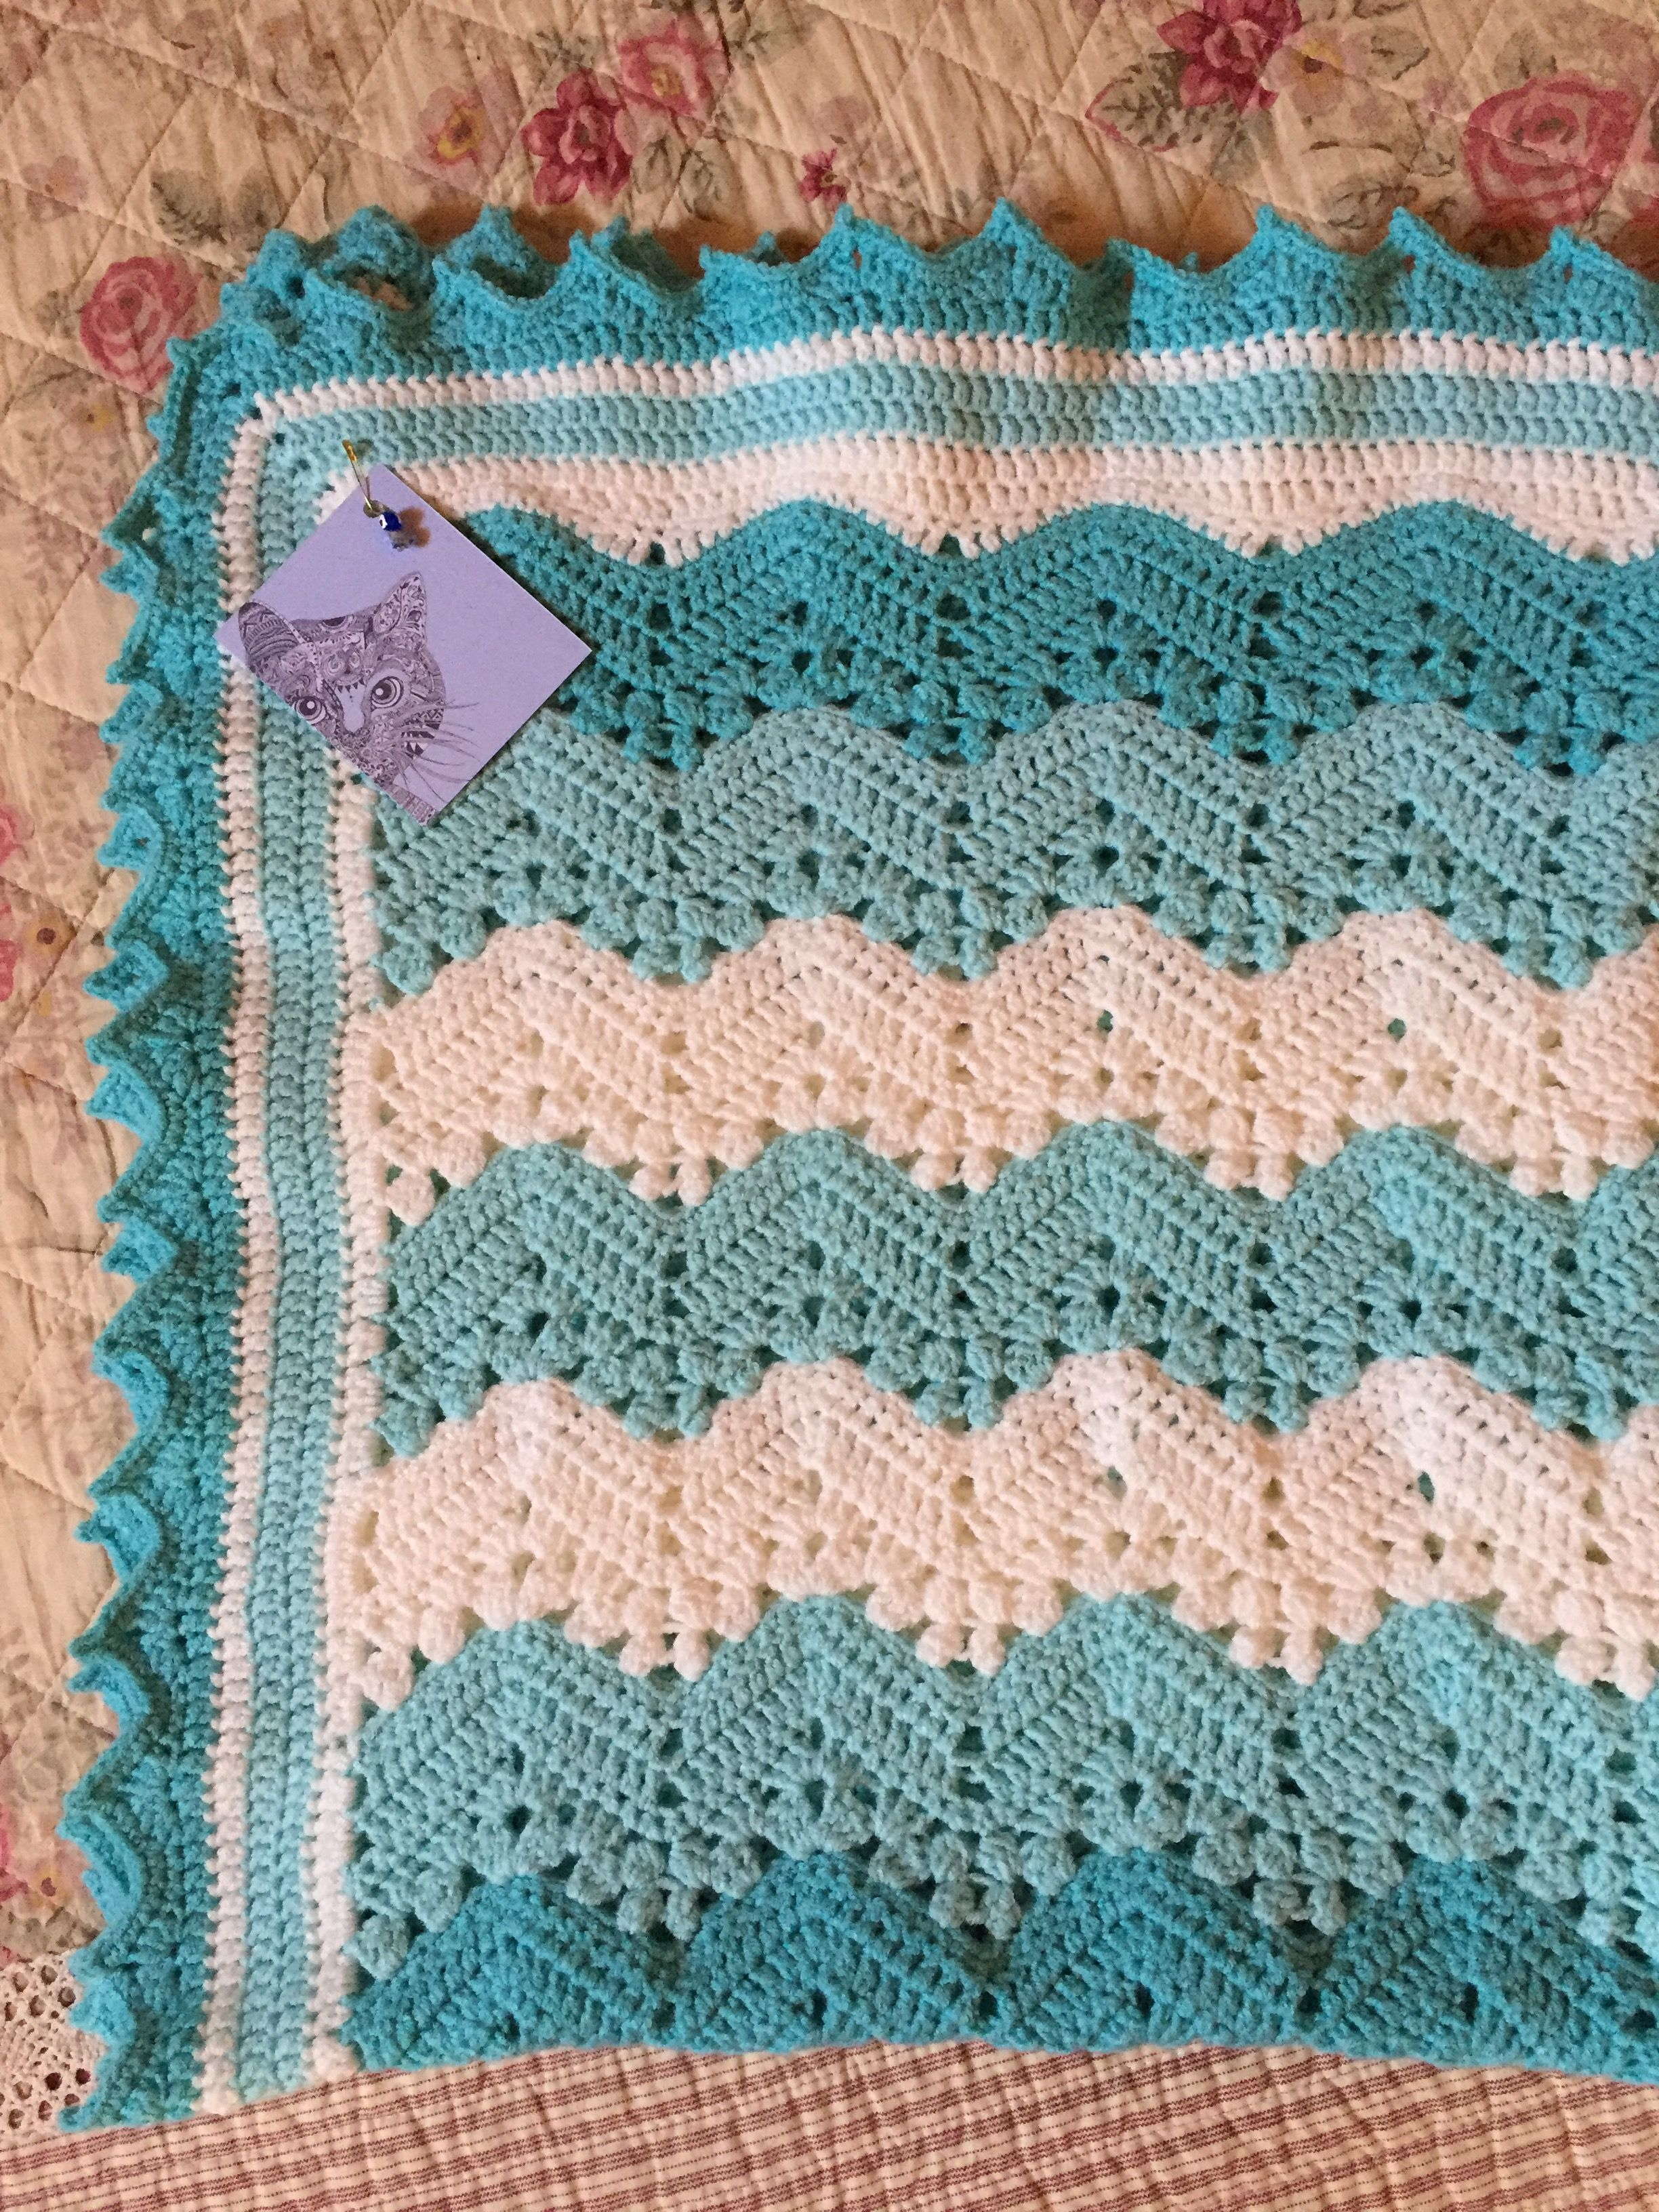 6 day kid blanket pattern on ravelry, my own border | Stuff I made ...